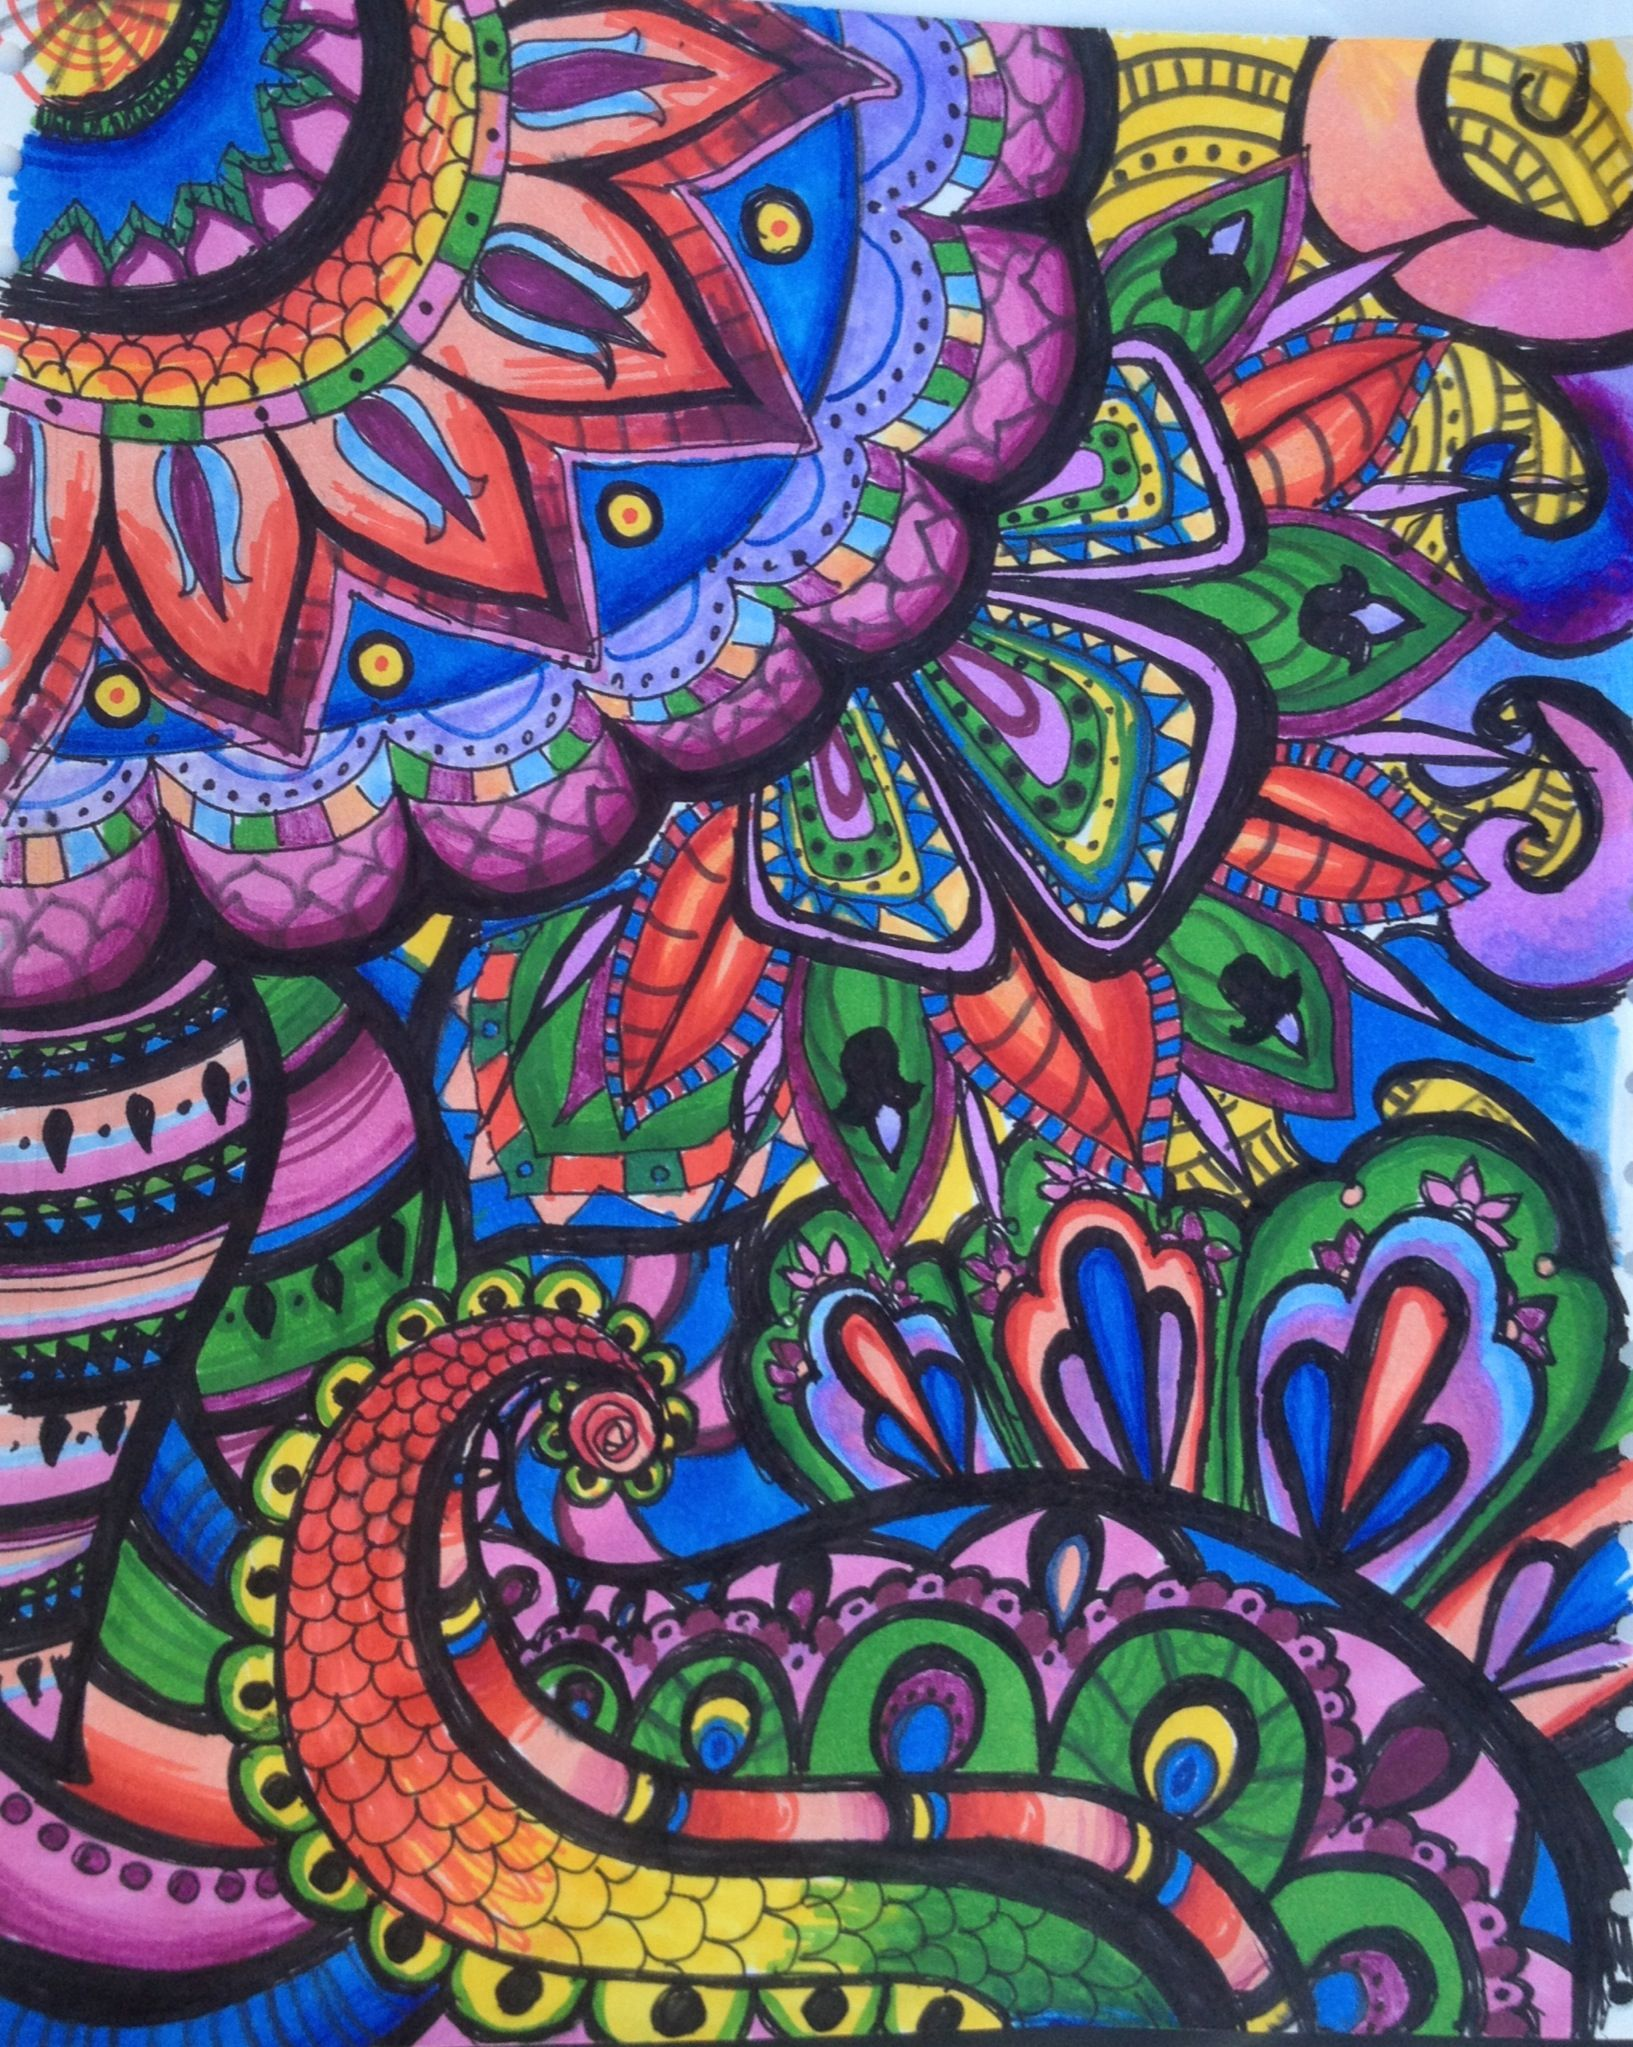 Trippy Art creates by: me | Paisley art, Trippy art ...